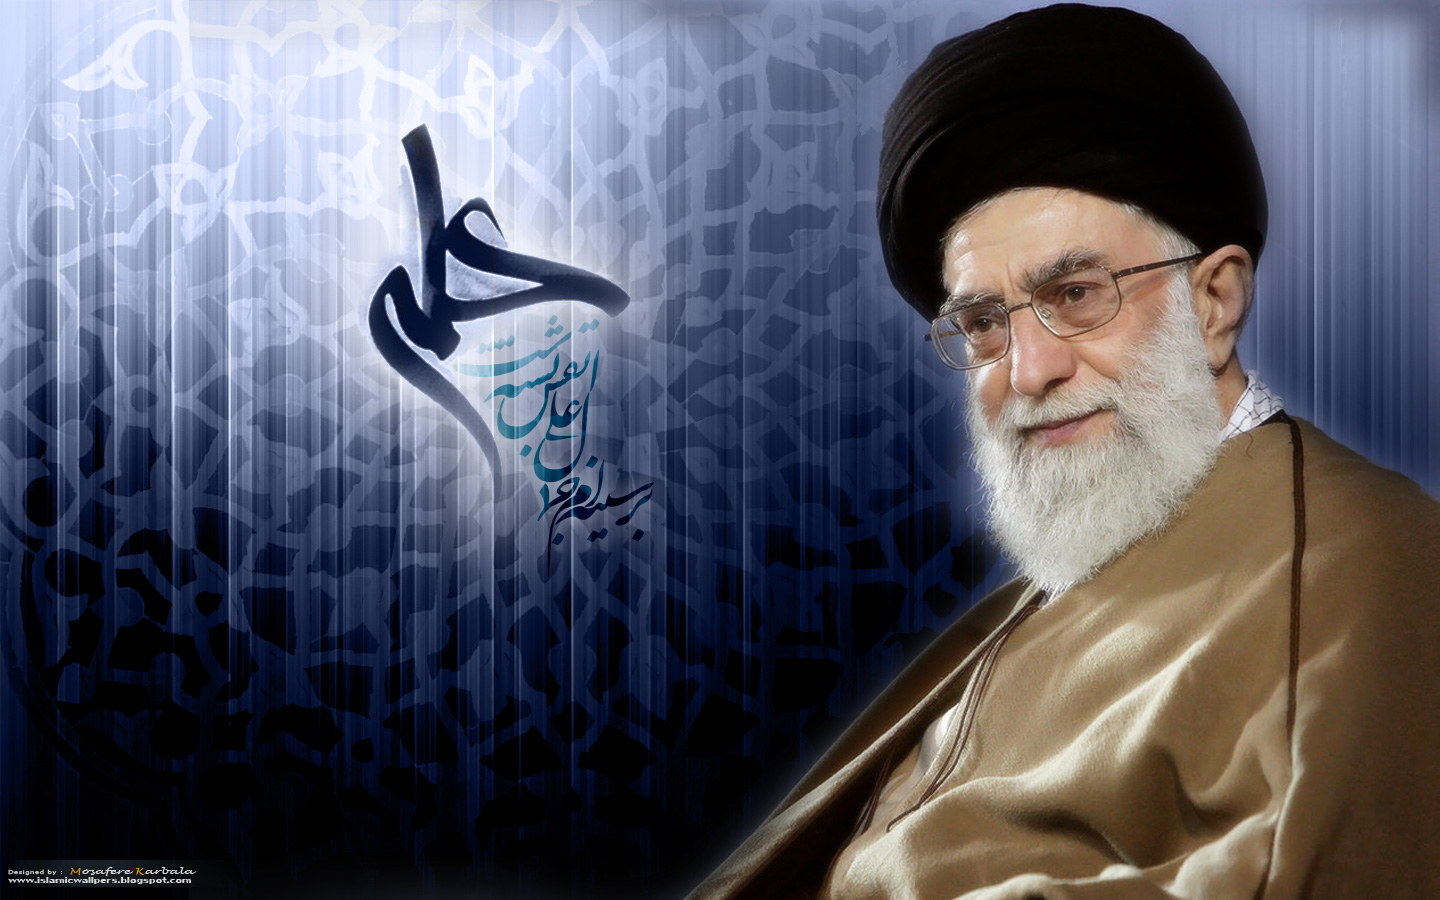 http://hablolmatin.persiangig.com/image/Agha/Leader.jpg